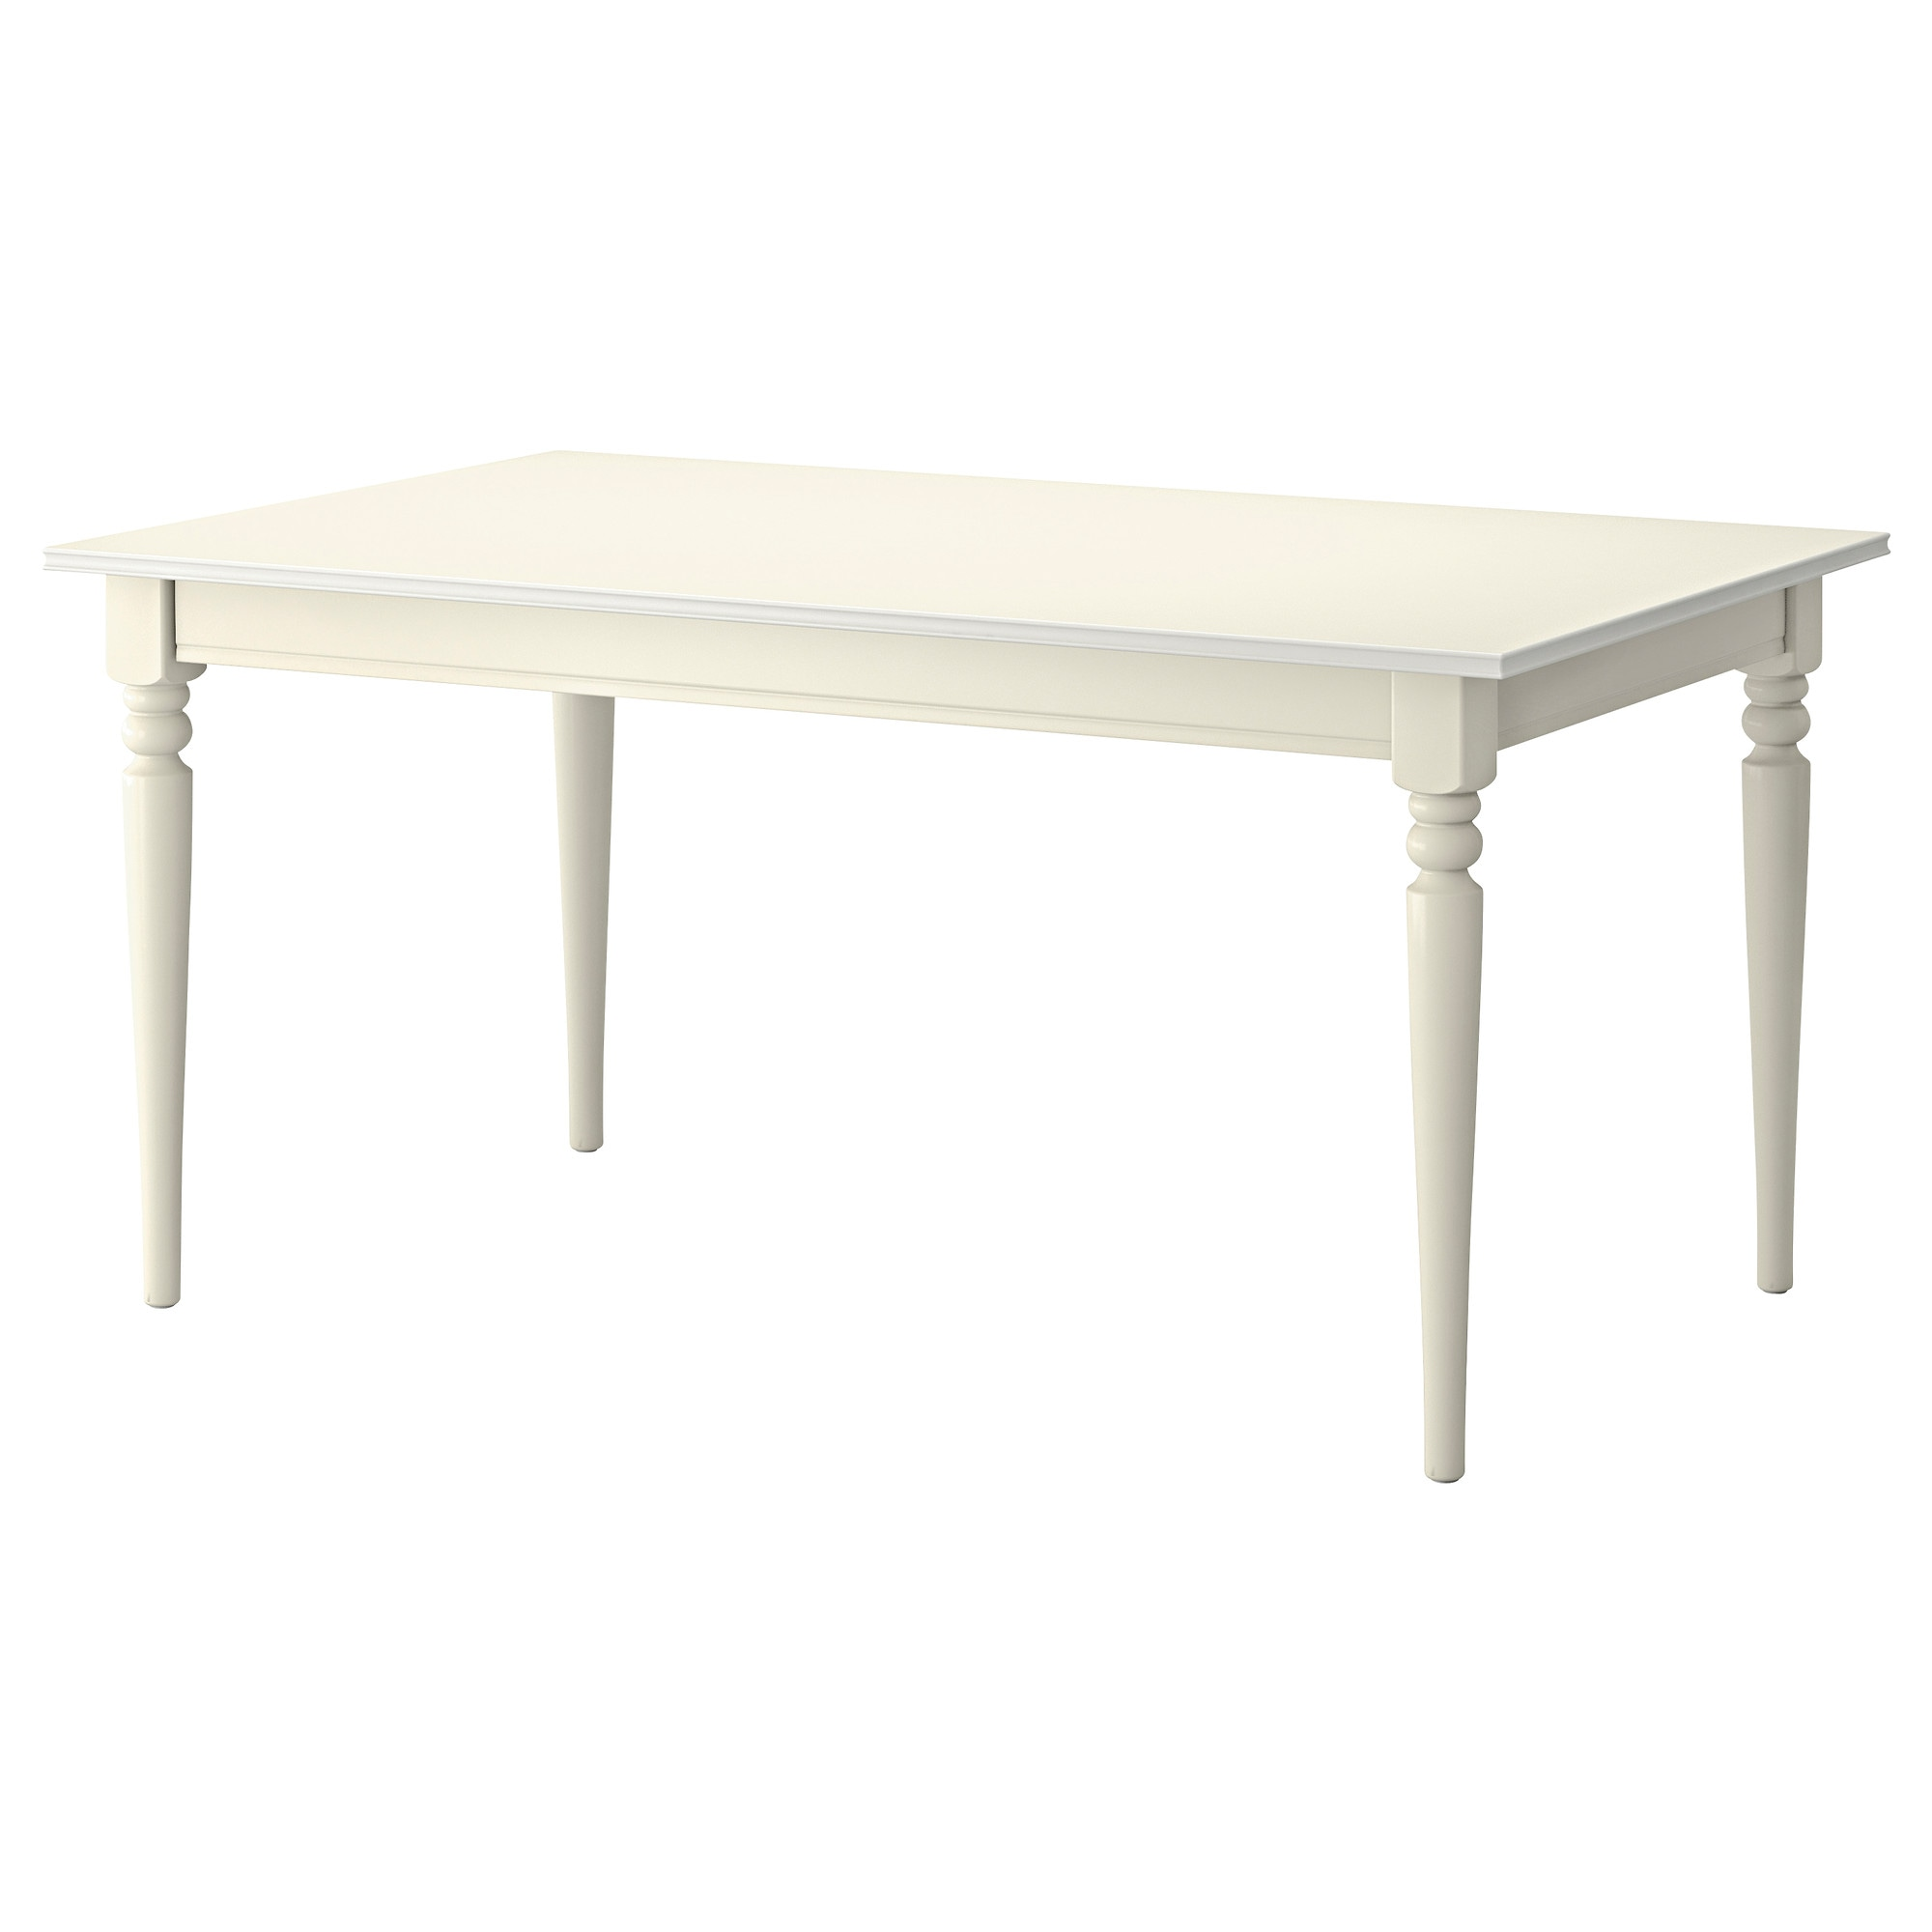 INGATORP Extendable Table White Length 61 Max 84 5